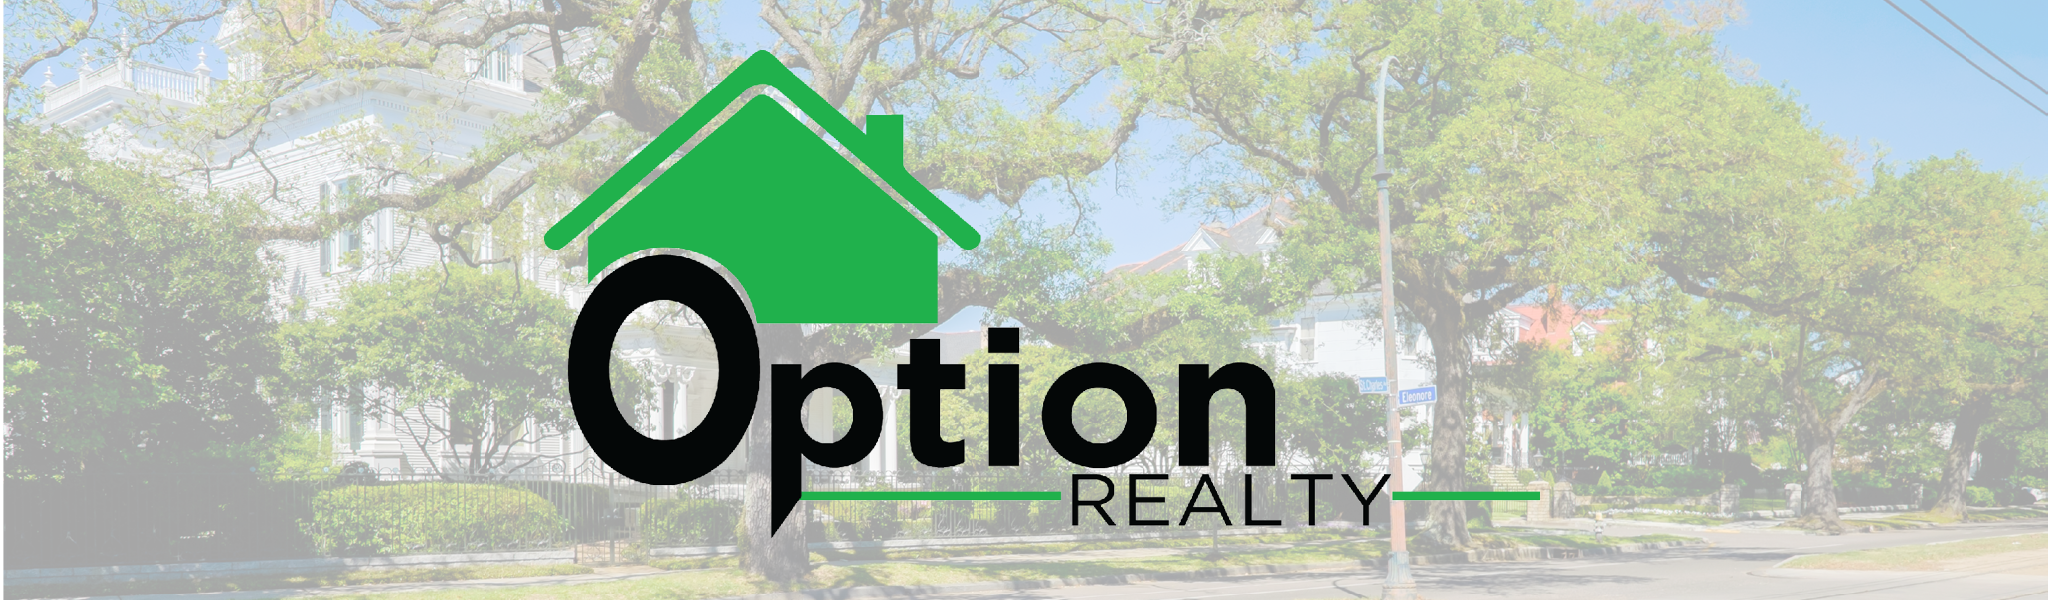 Option Realty Page